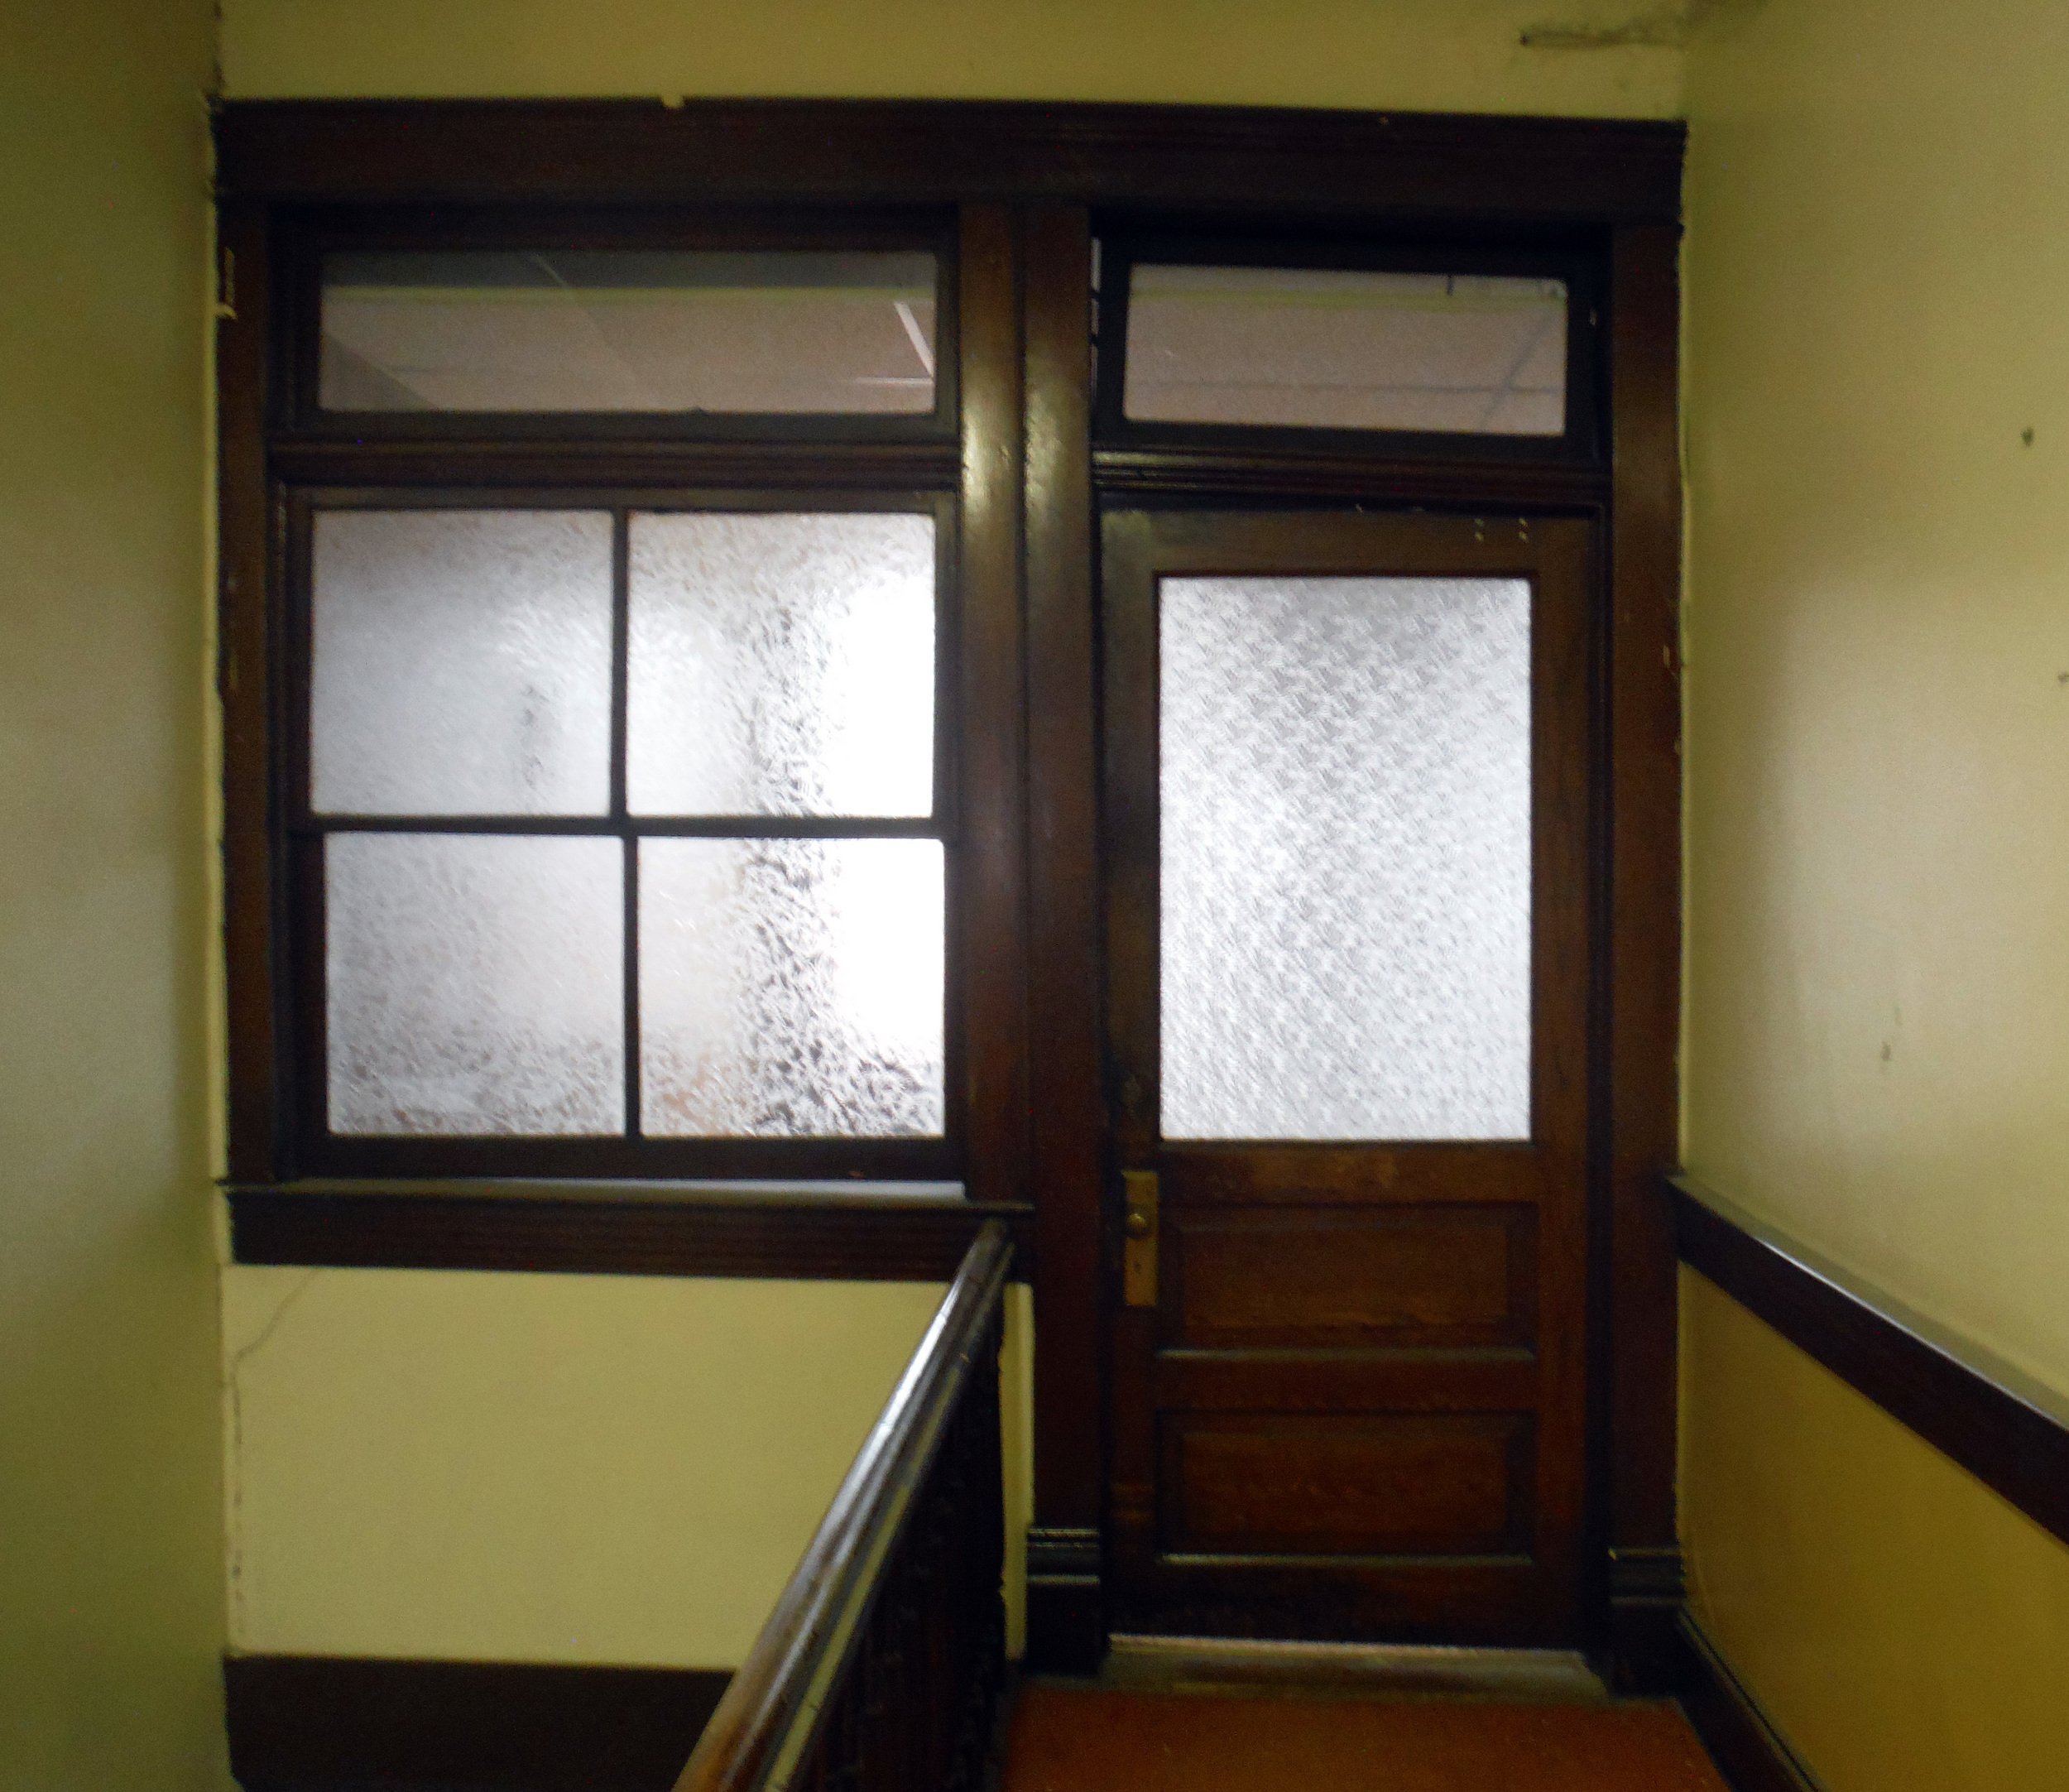 Door at the top of the stairs. Photo by Sydney Haltom, March 2015.